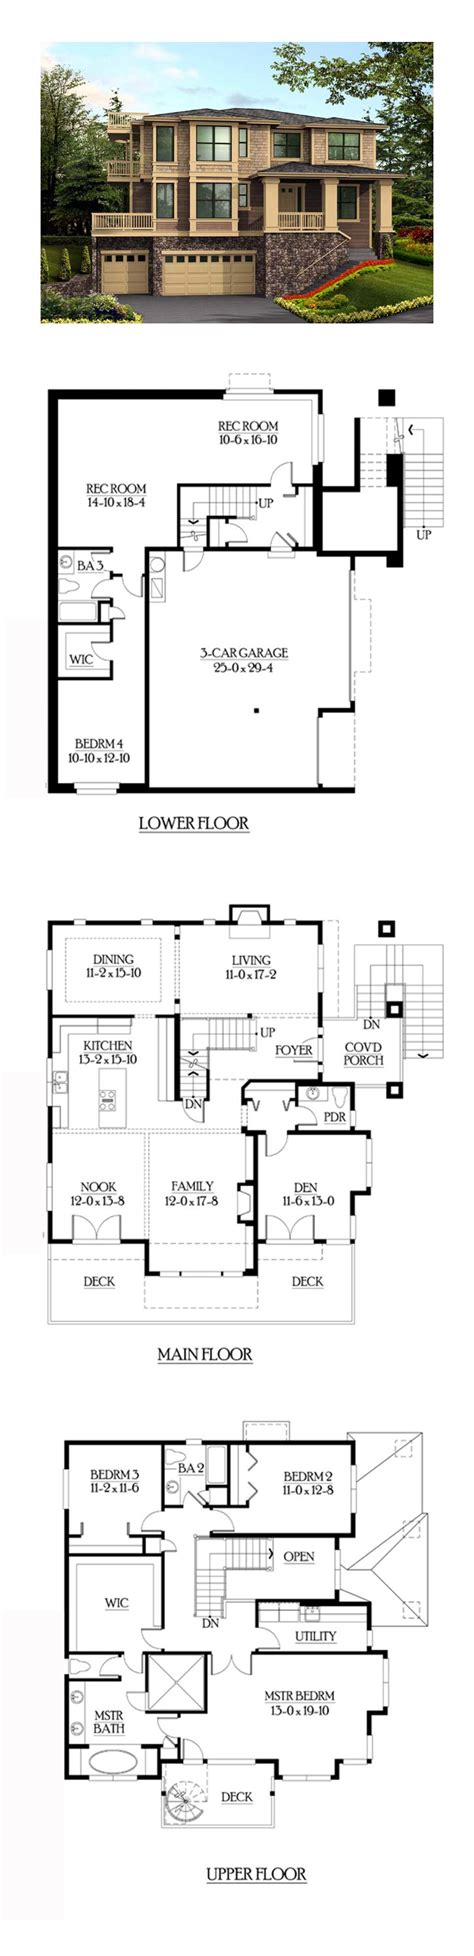 home plans with basements best 25 basement house plans ideas on house floor plans house plans and house